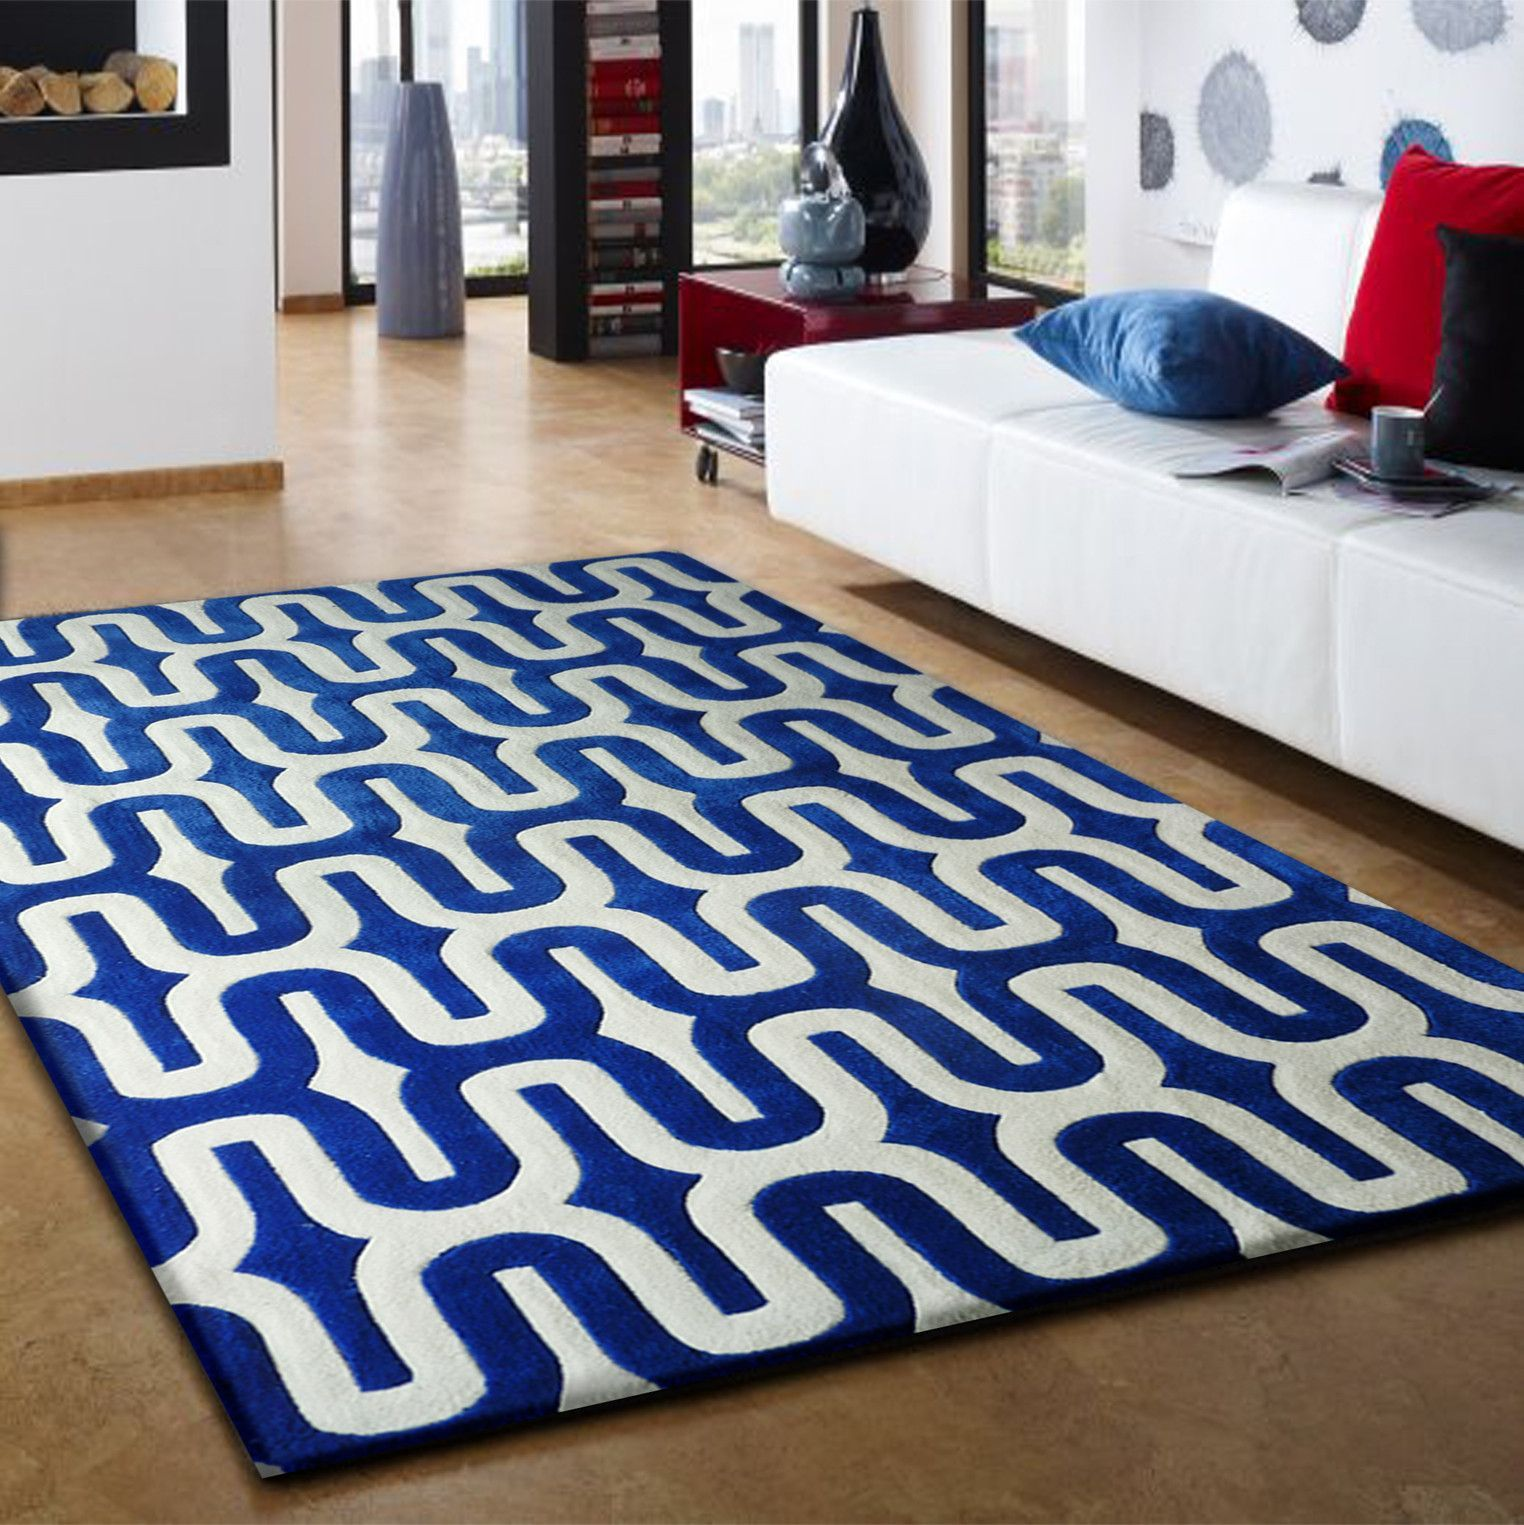 3-piece set | linear design vibrant blue with white area rug